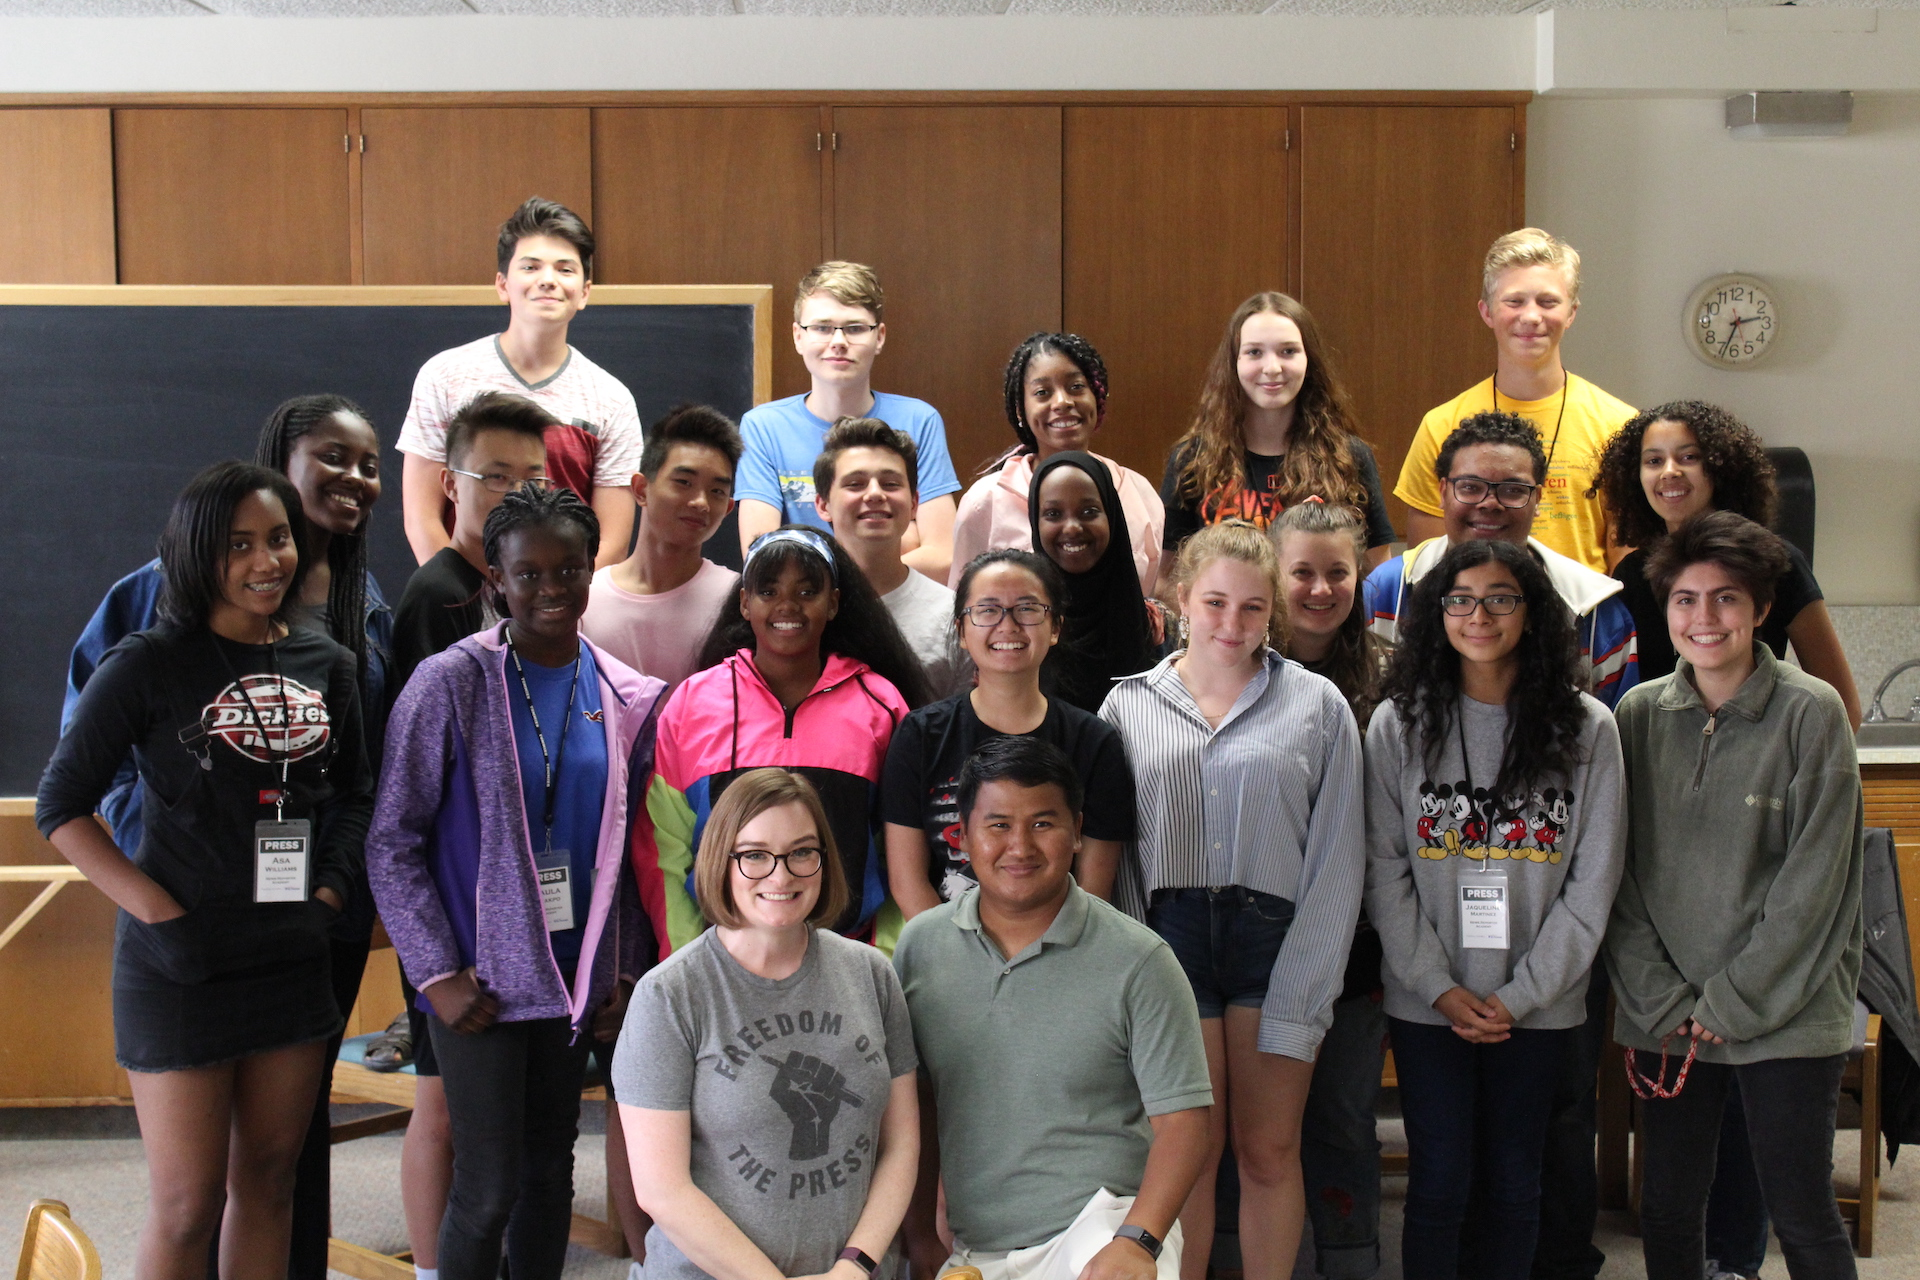 Group photo of Theresa Malloy and Dymanh Chhoun with students, 2019 summer journalism camp